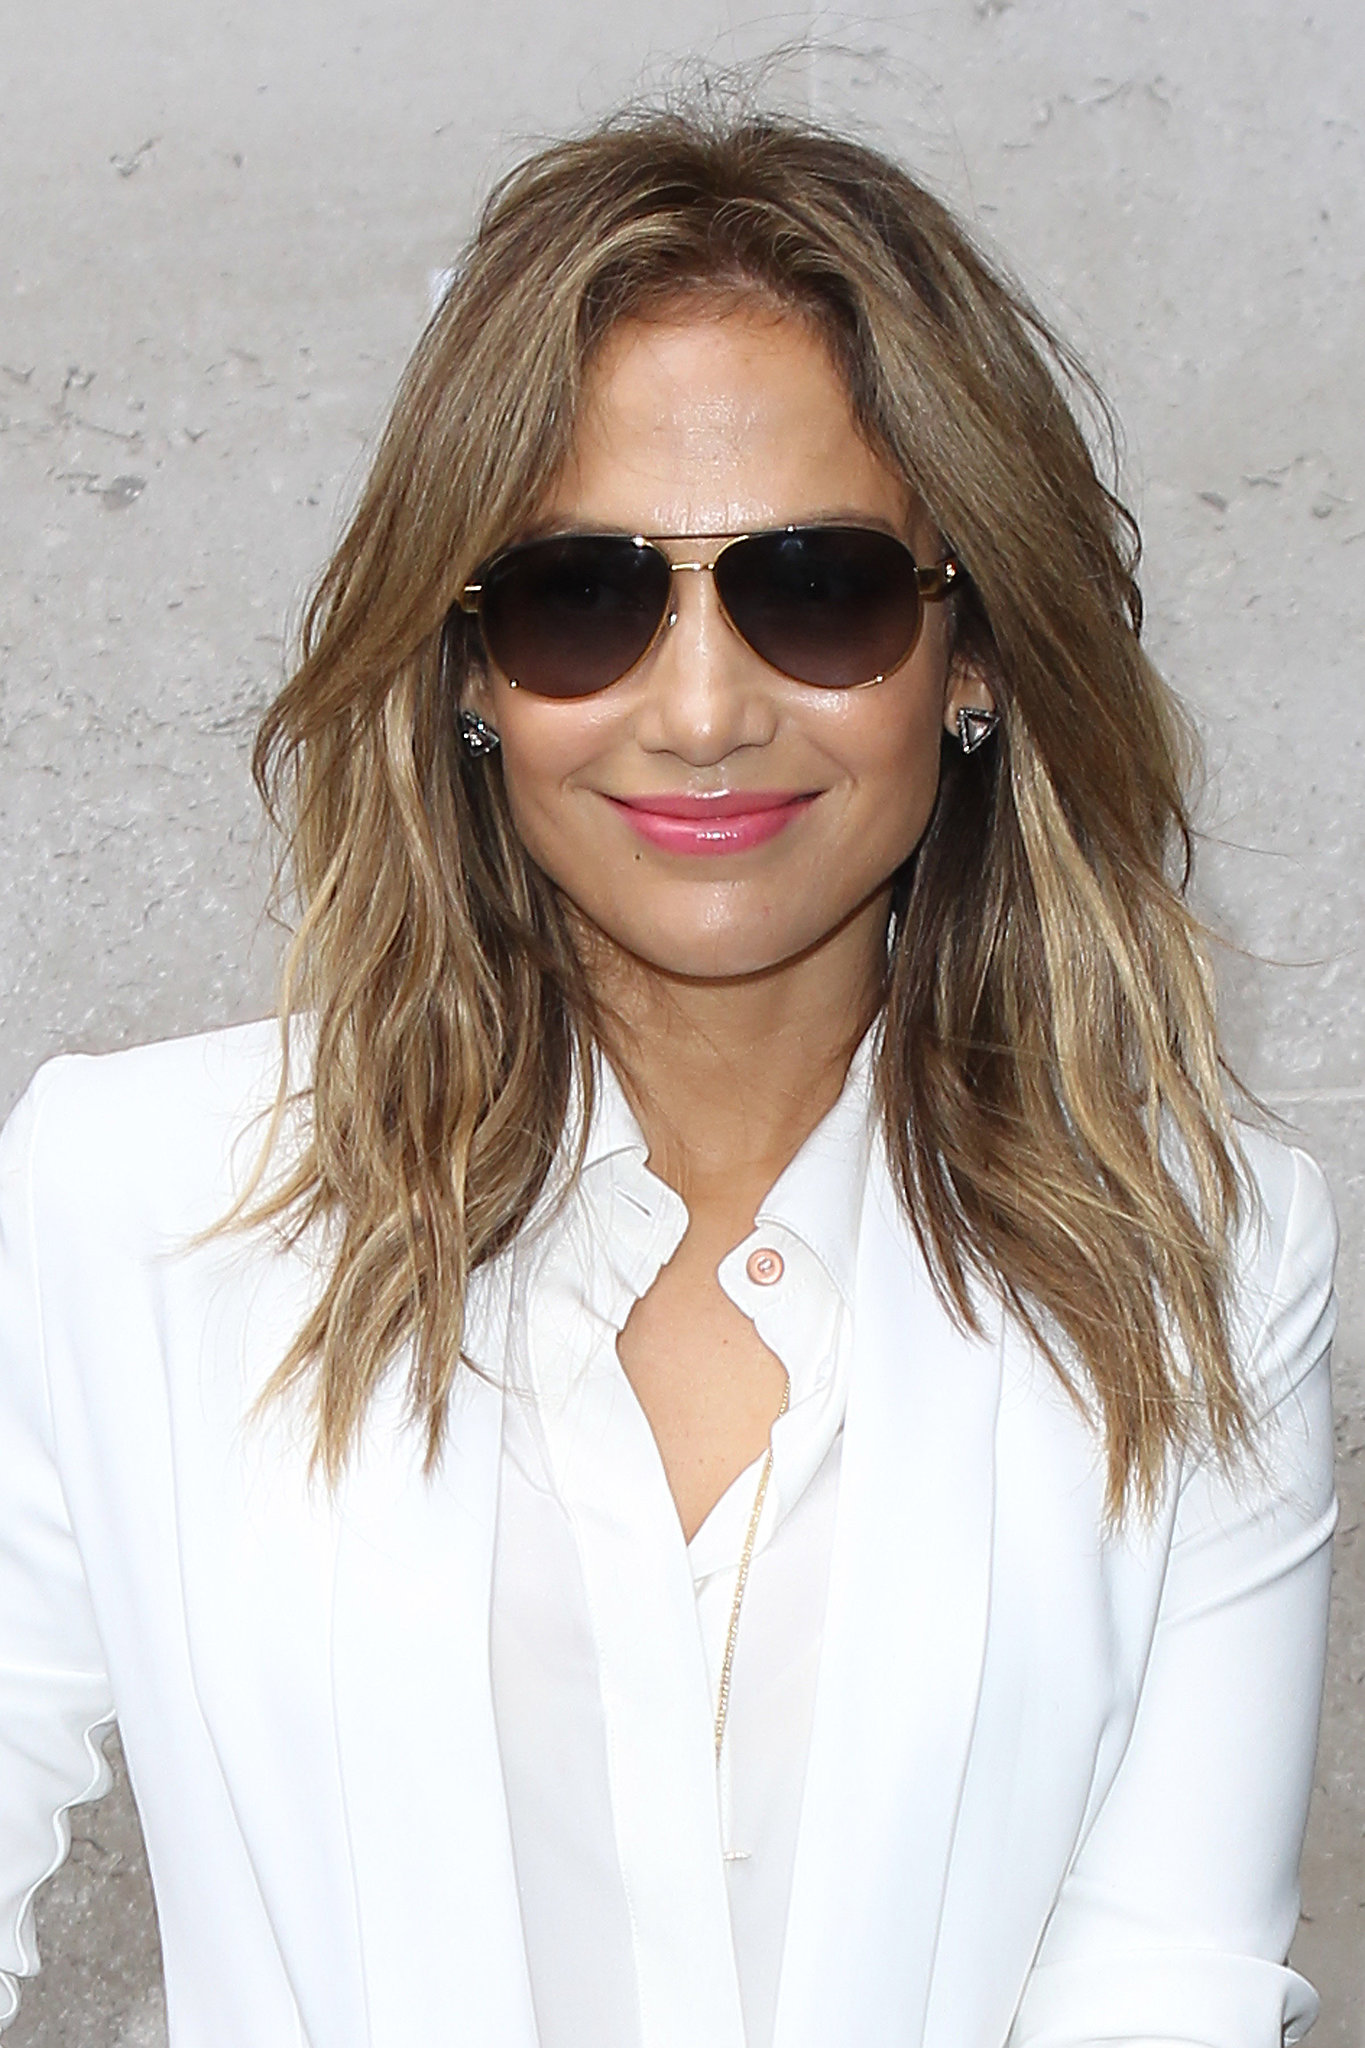 Smaller, less cohesive waves, like Jennifer Lopez's here, can be achieved by sleeping in braids to create the kinky style.